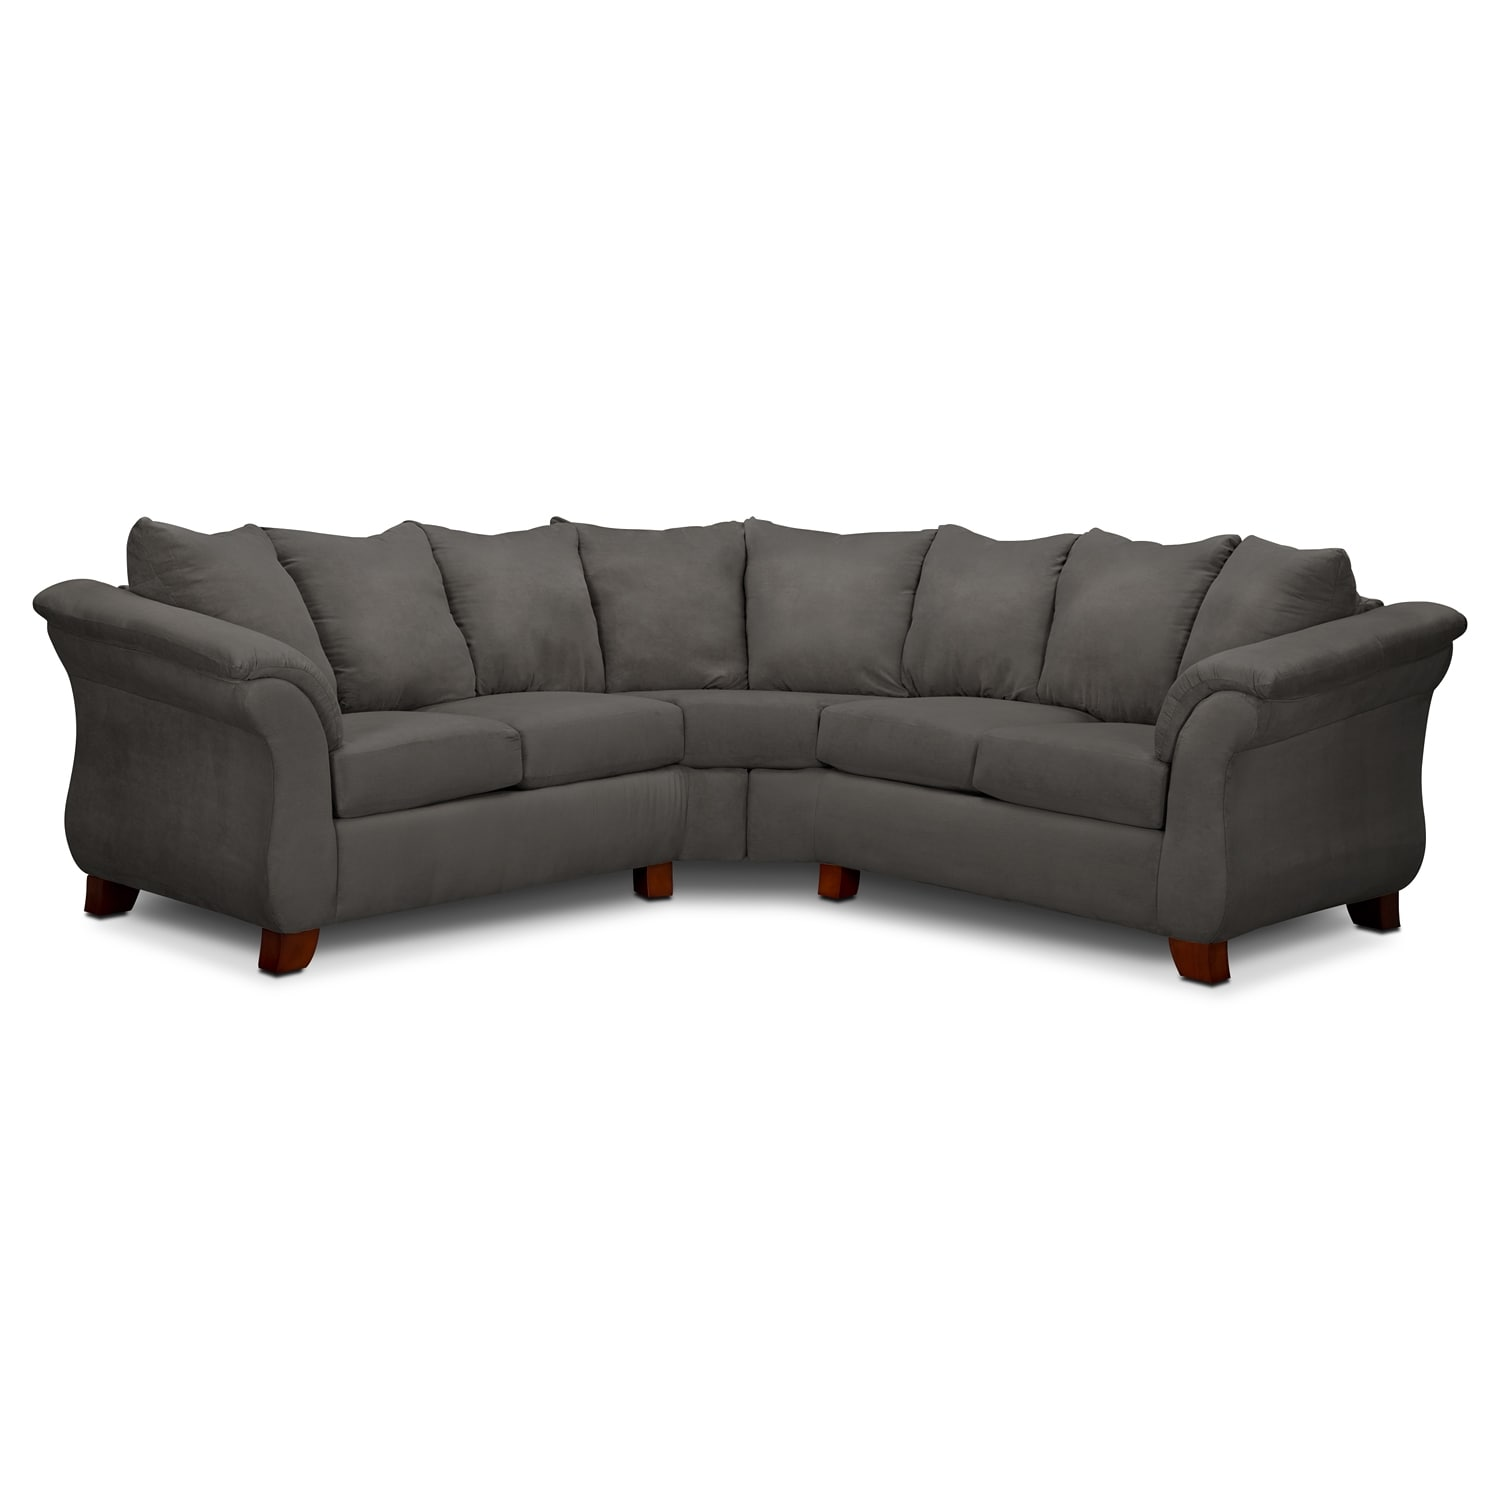 adrian graphite ii 2 pc sectional value city furniture